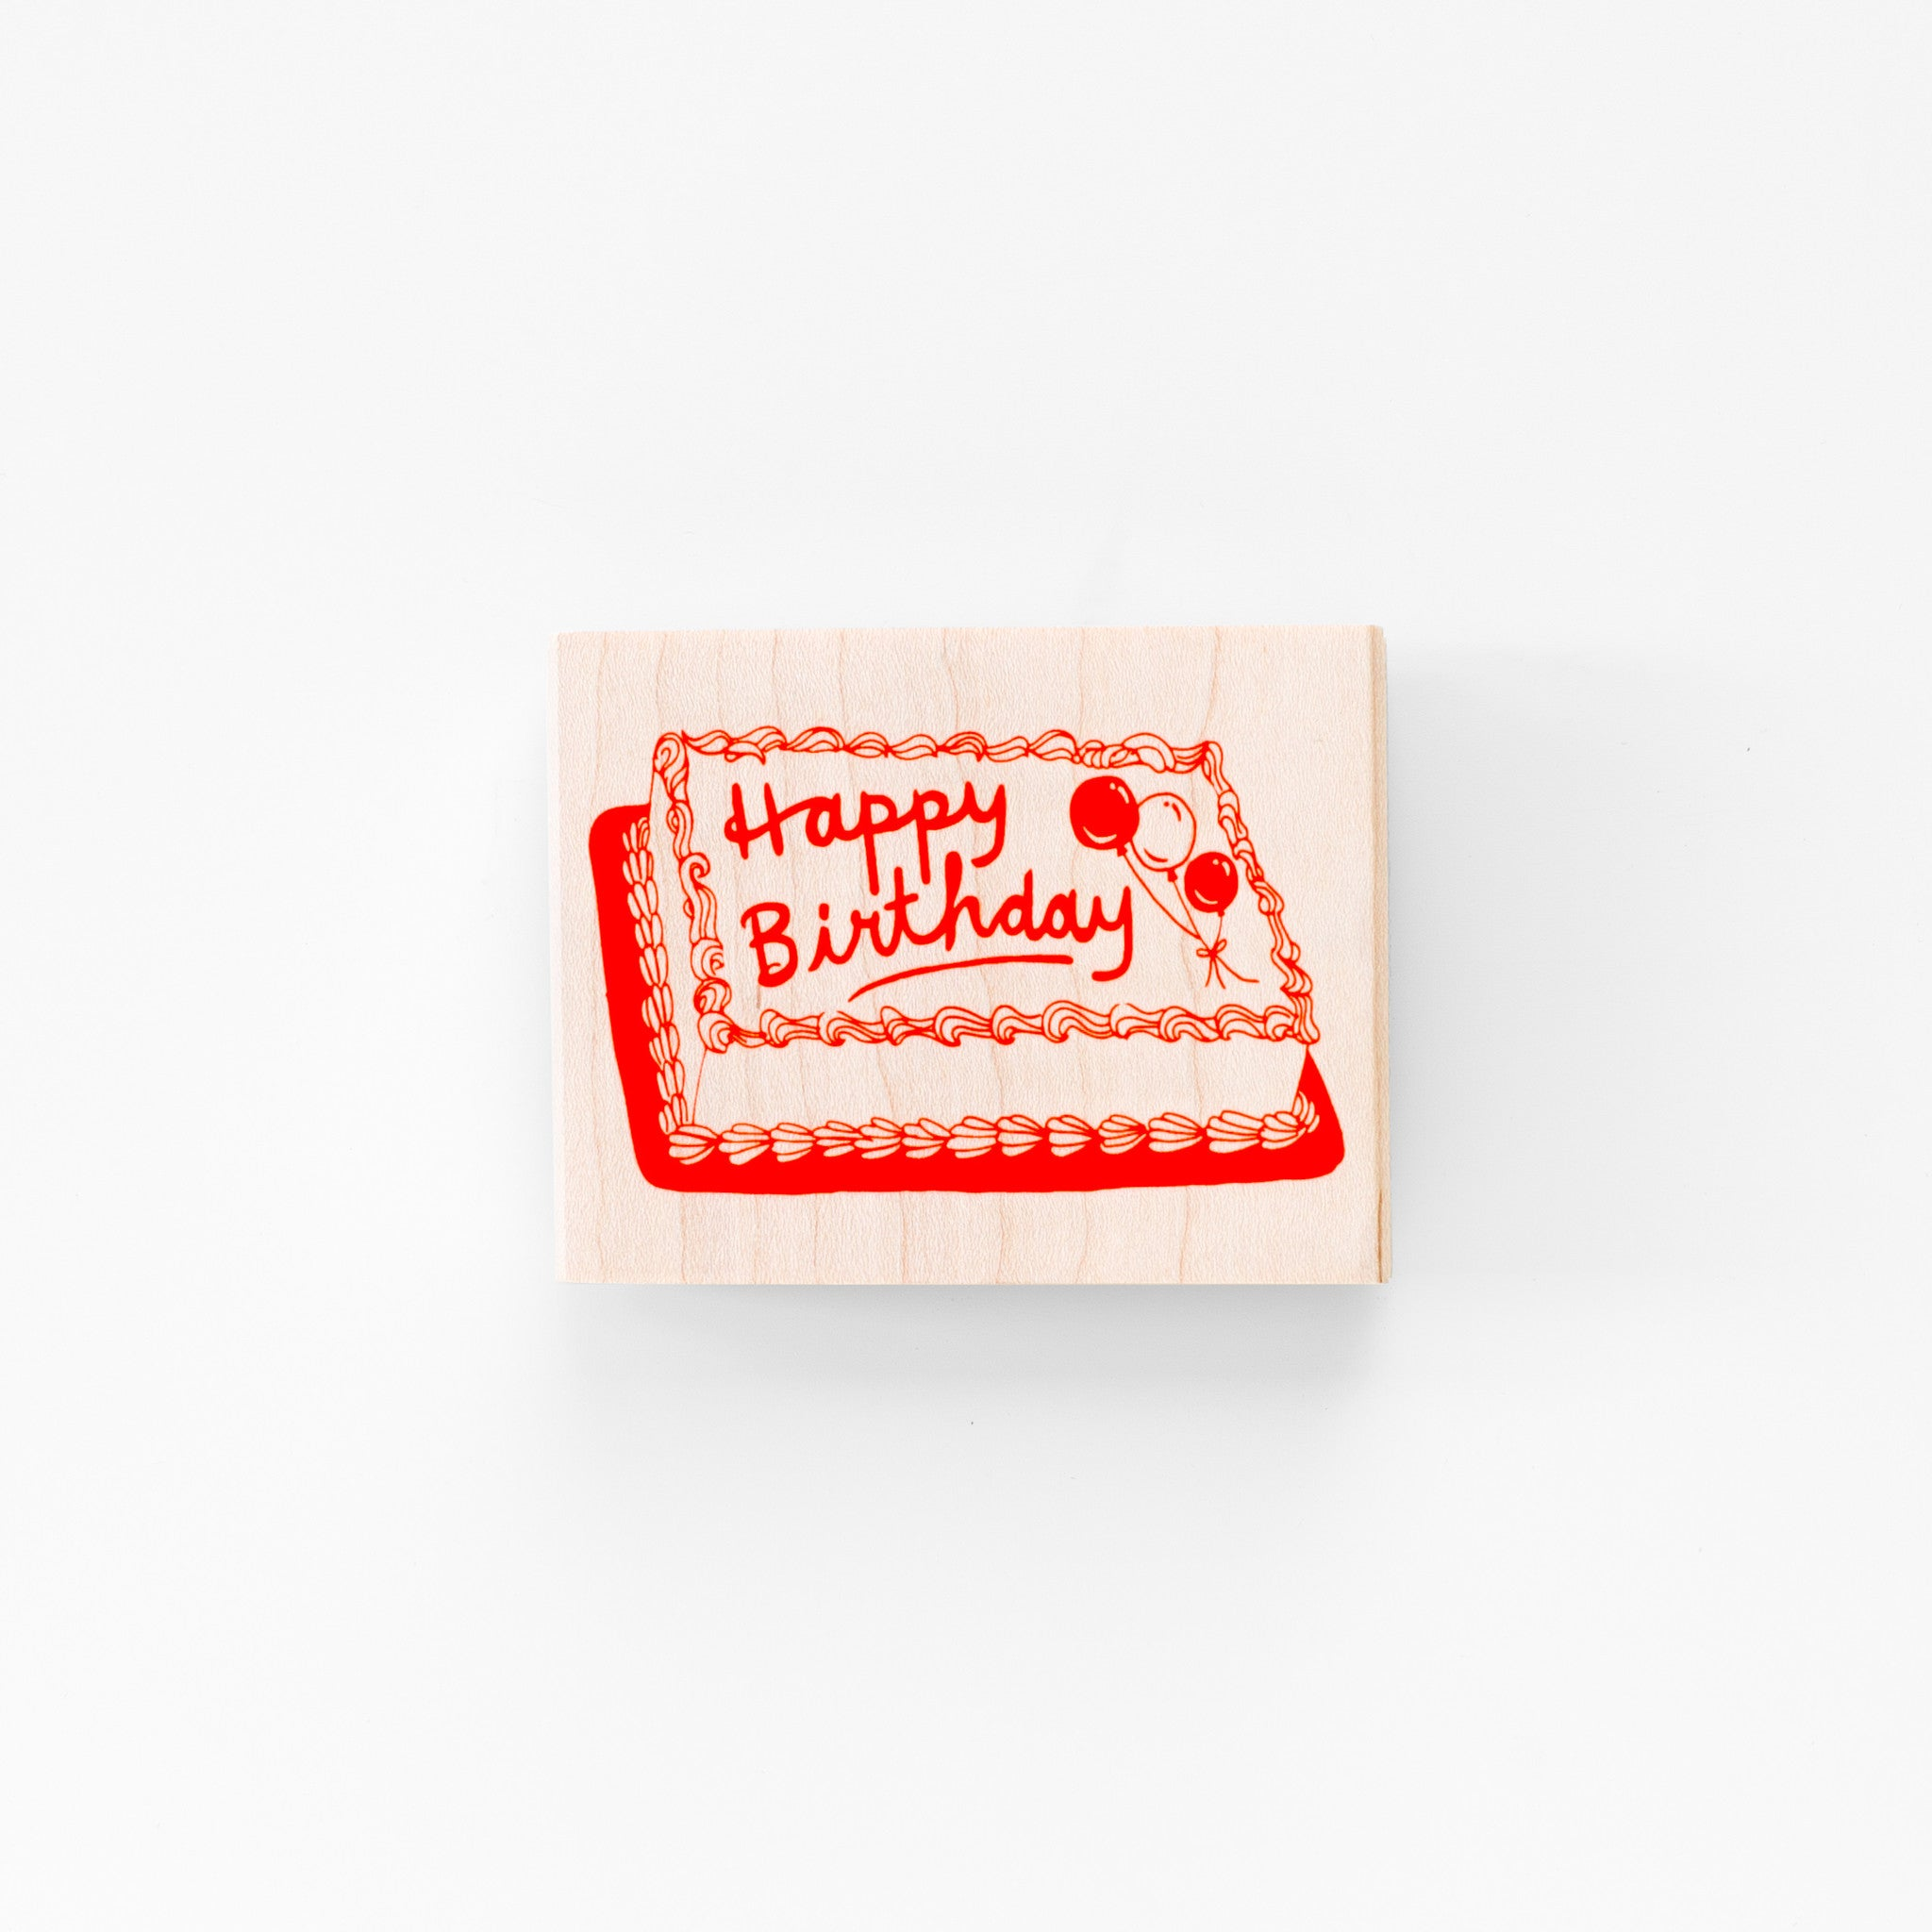 Happy Birthday Cake Stamp